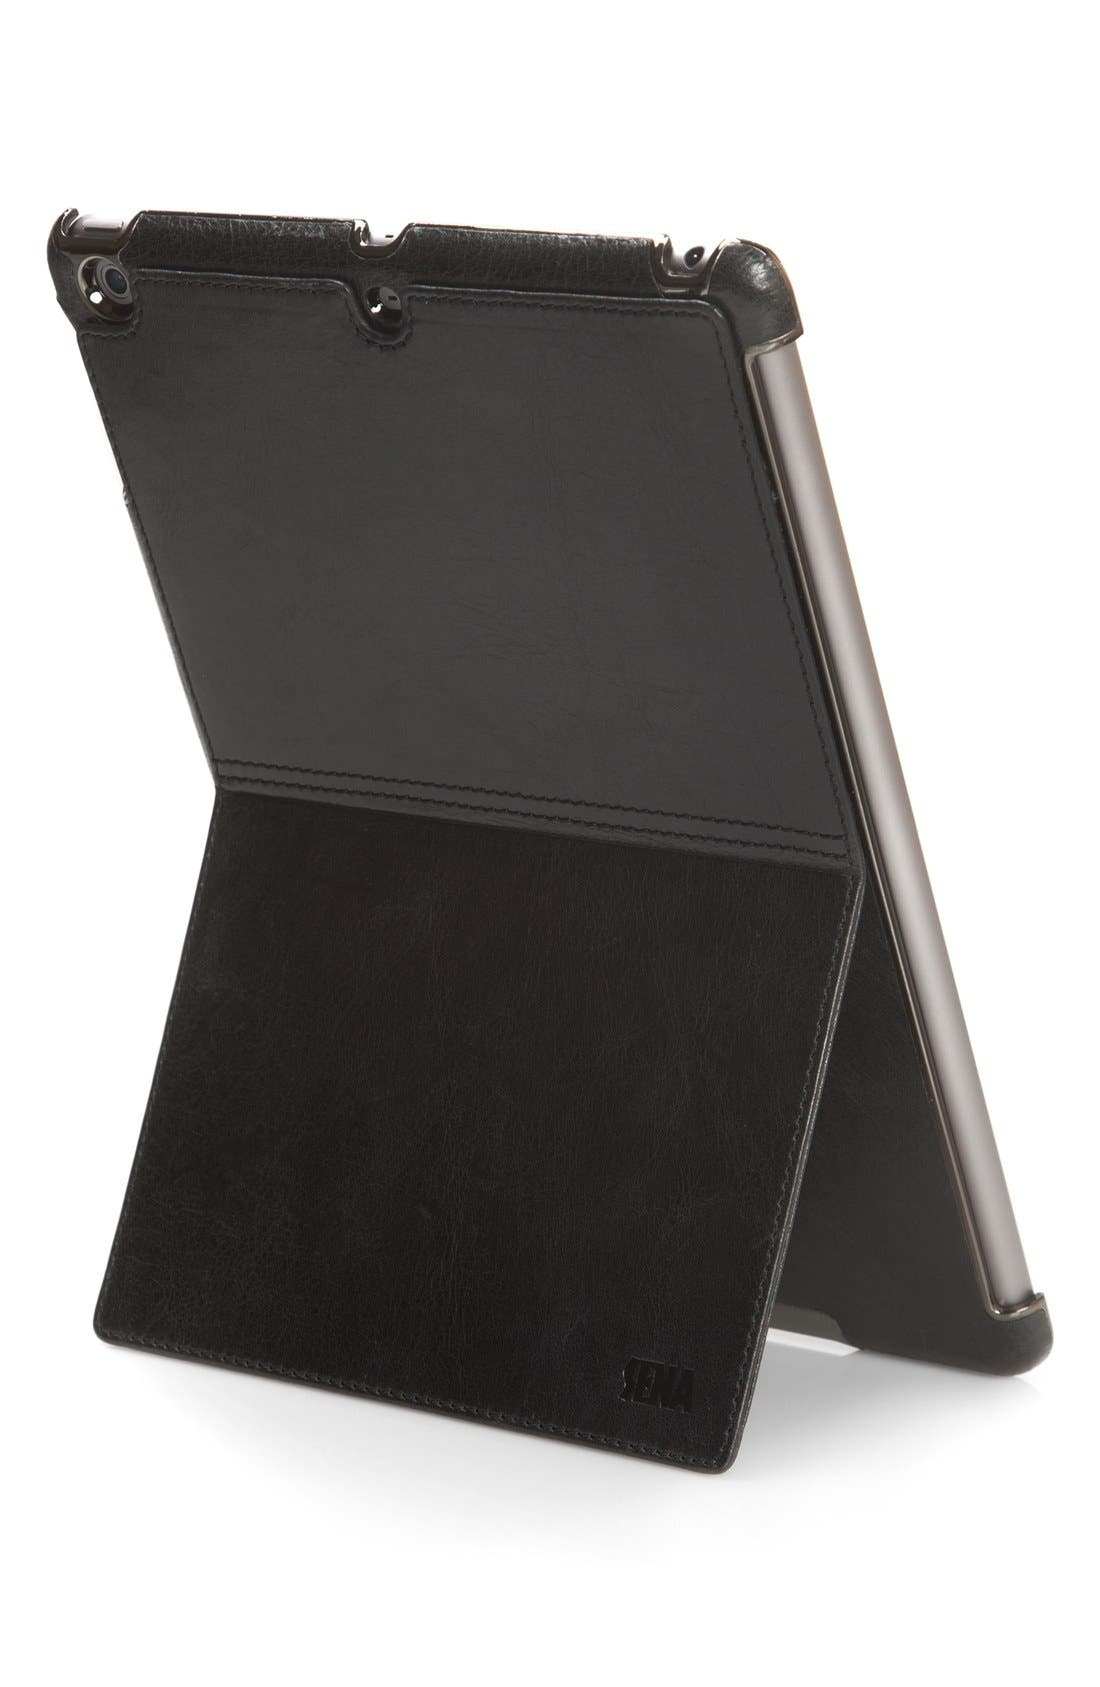 Sena 'Heritage' iPad Air Stand